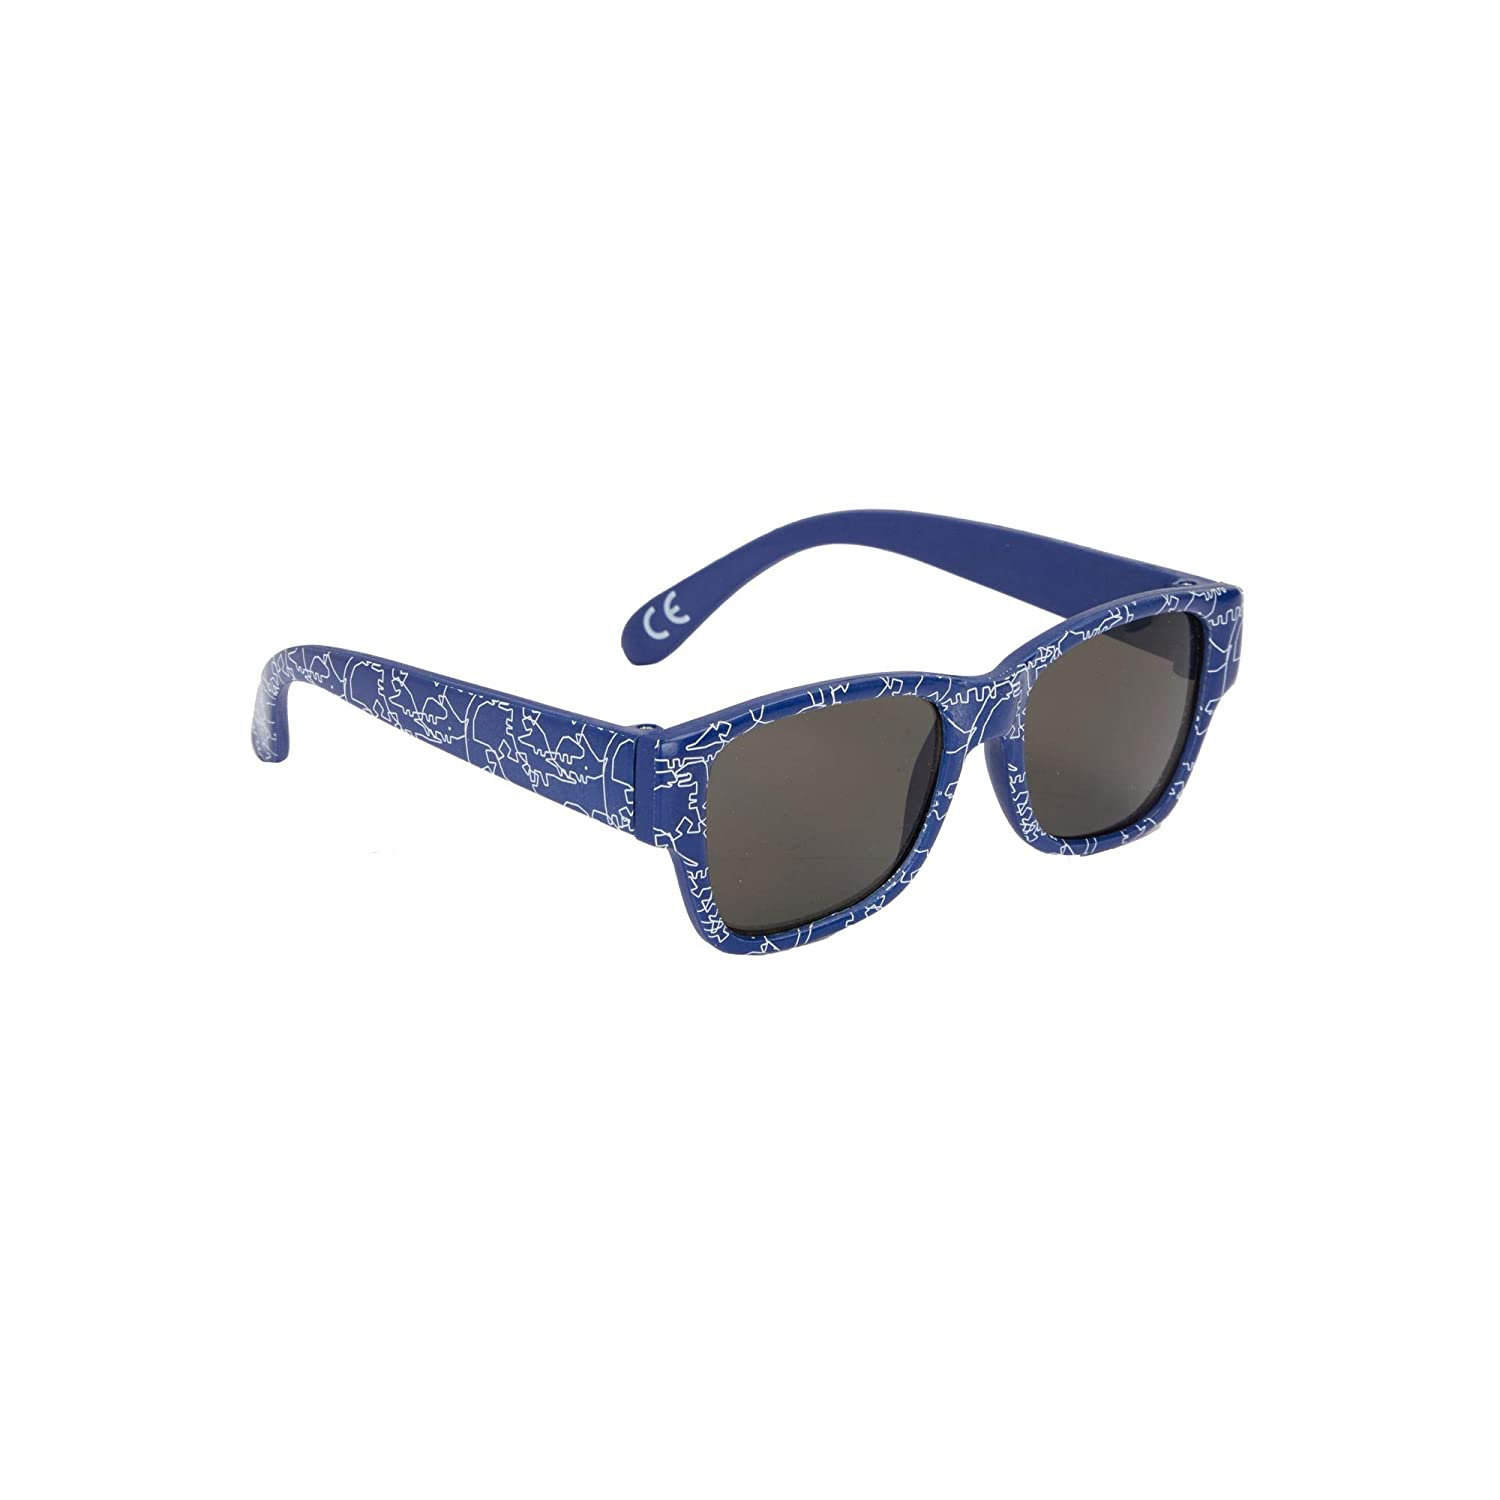 Blue Mothercare Printed Sunglasses Scarf Size:one Size One Hat /& Glove Set Navy 21